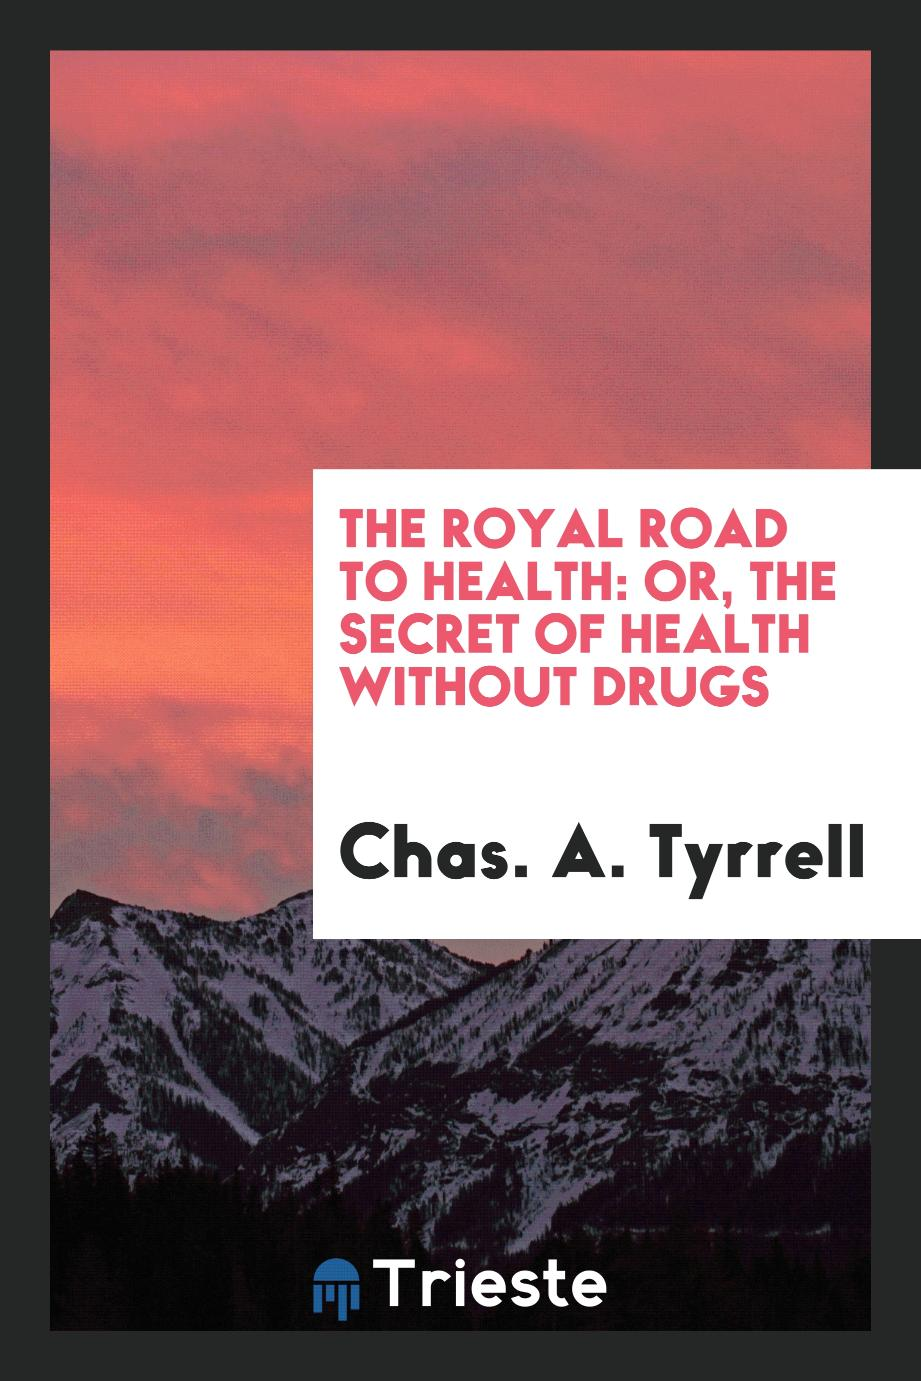 The royal road to health: or, The secret of health without drugs